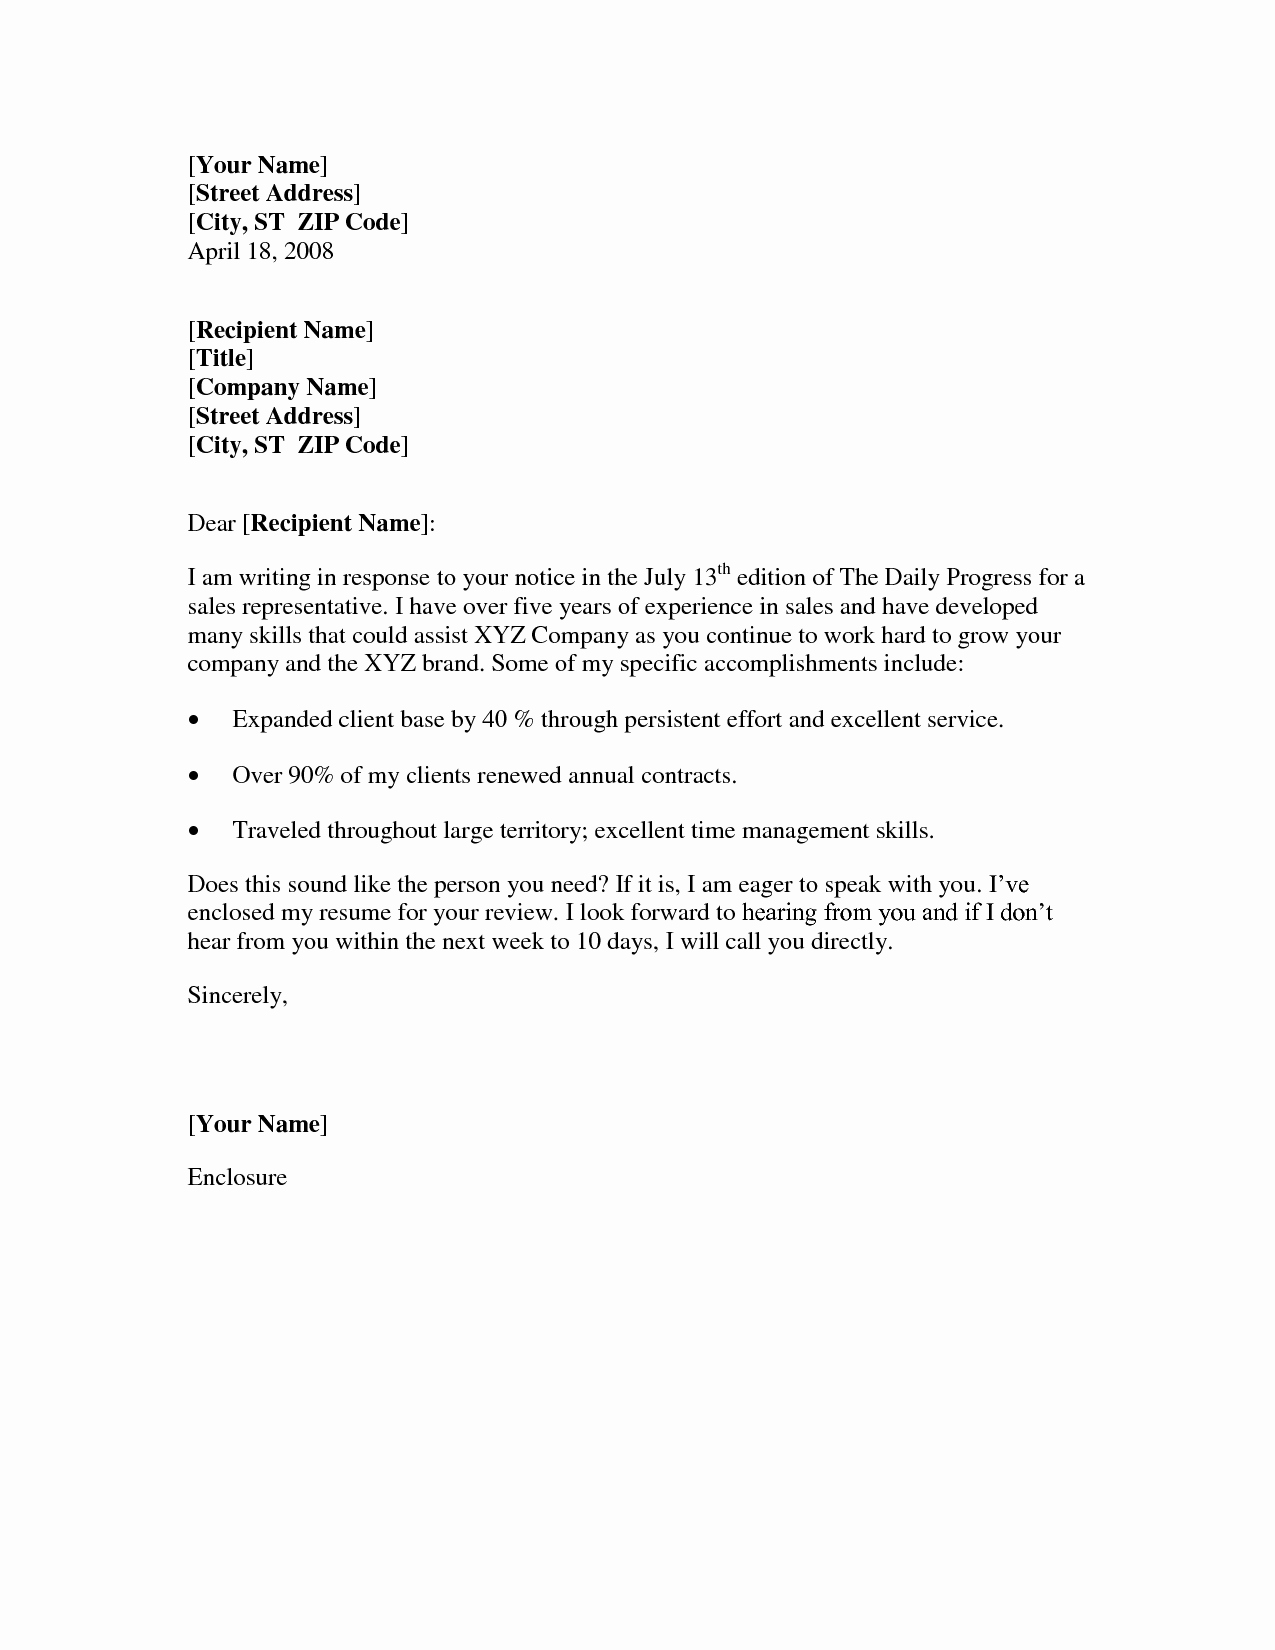 Example Of Basic Cover Letter Elegant 10 Best Of Basic Cover Letter for Resume Sample